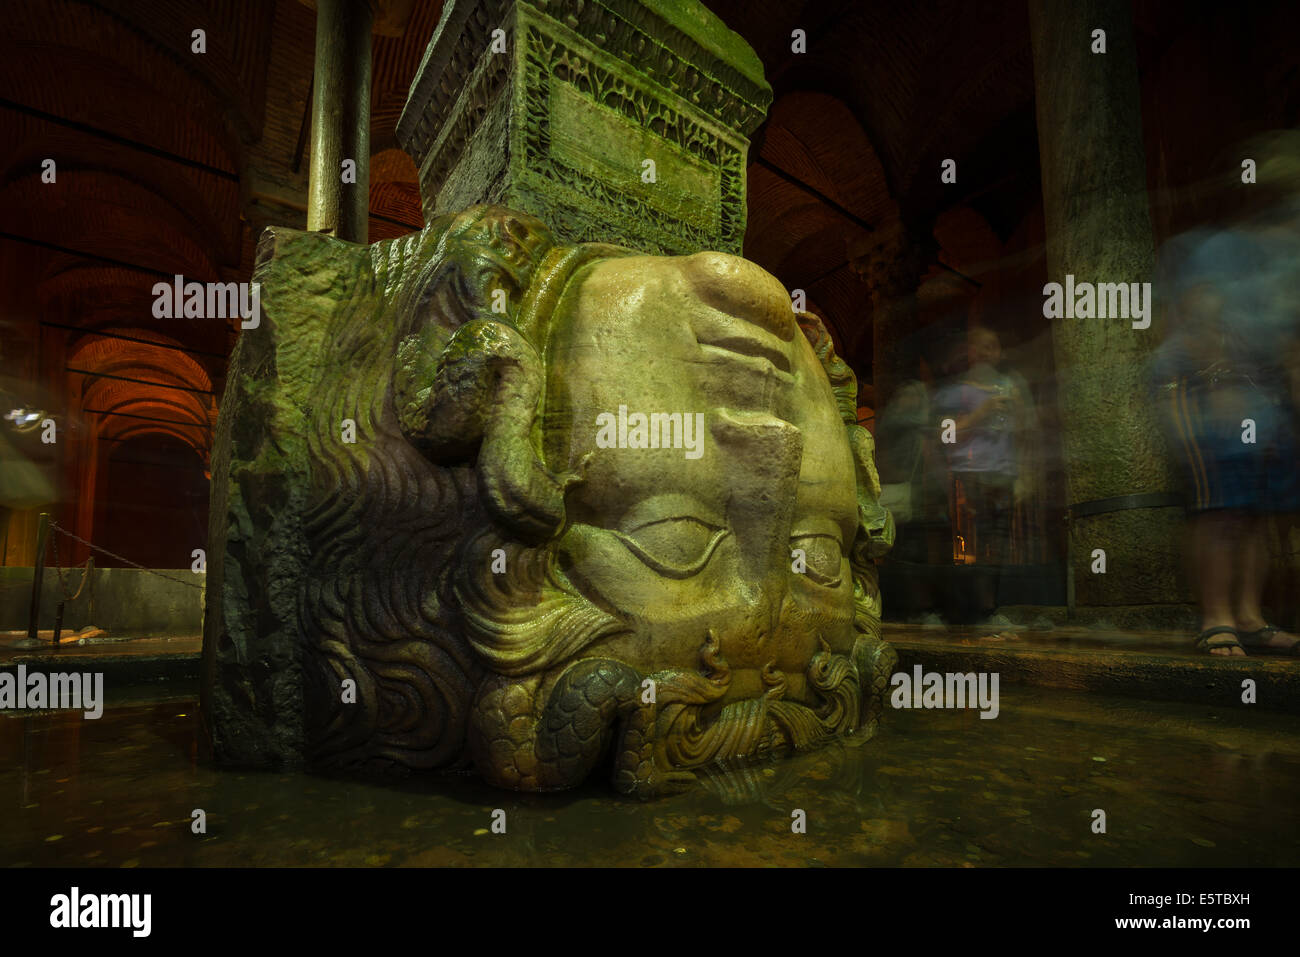 A giant Medusa head supports a column at the Basilica Cistern in Istanbul, Turkey. - Stock Image